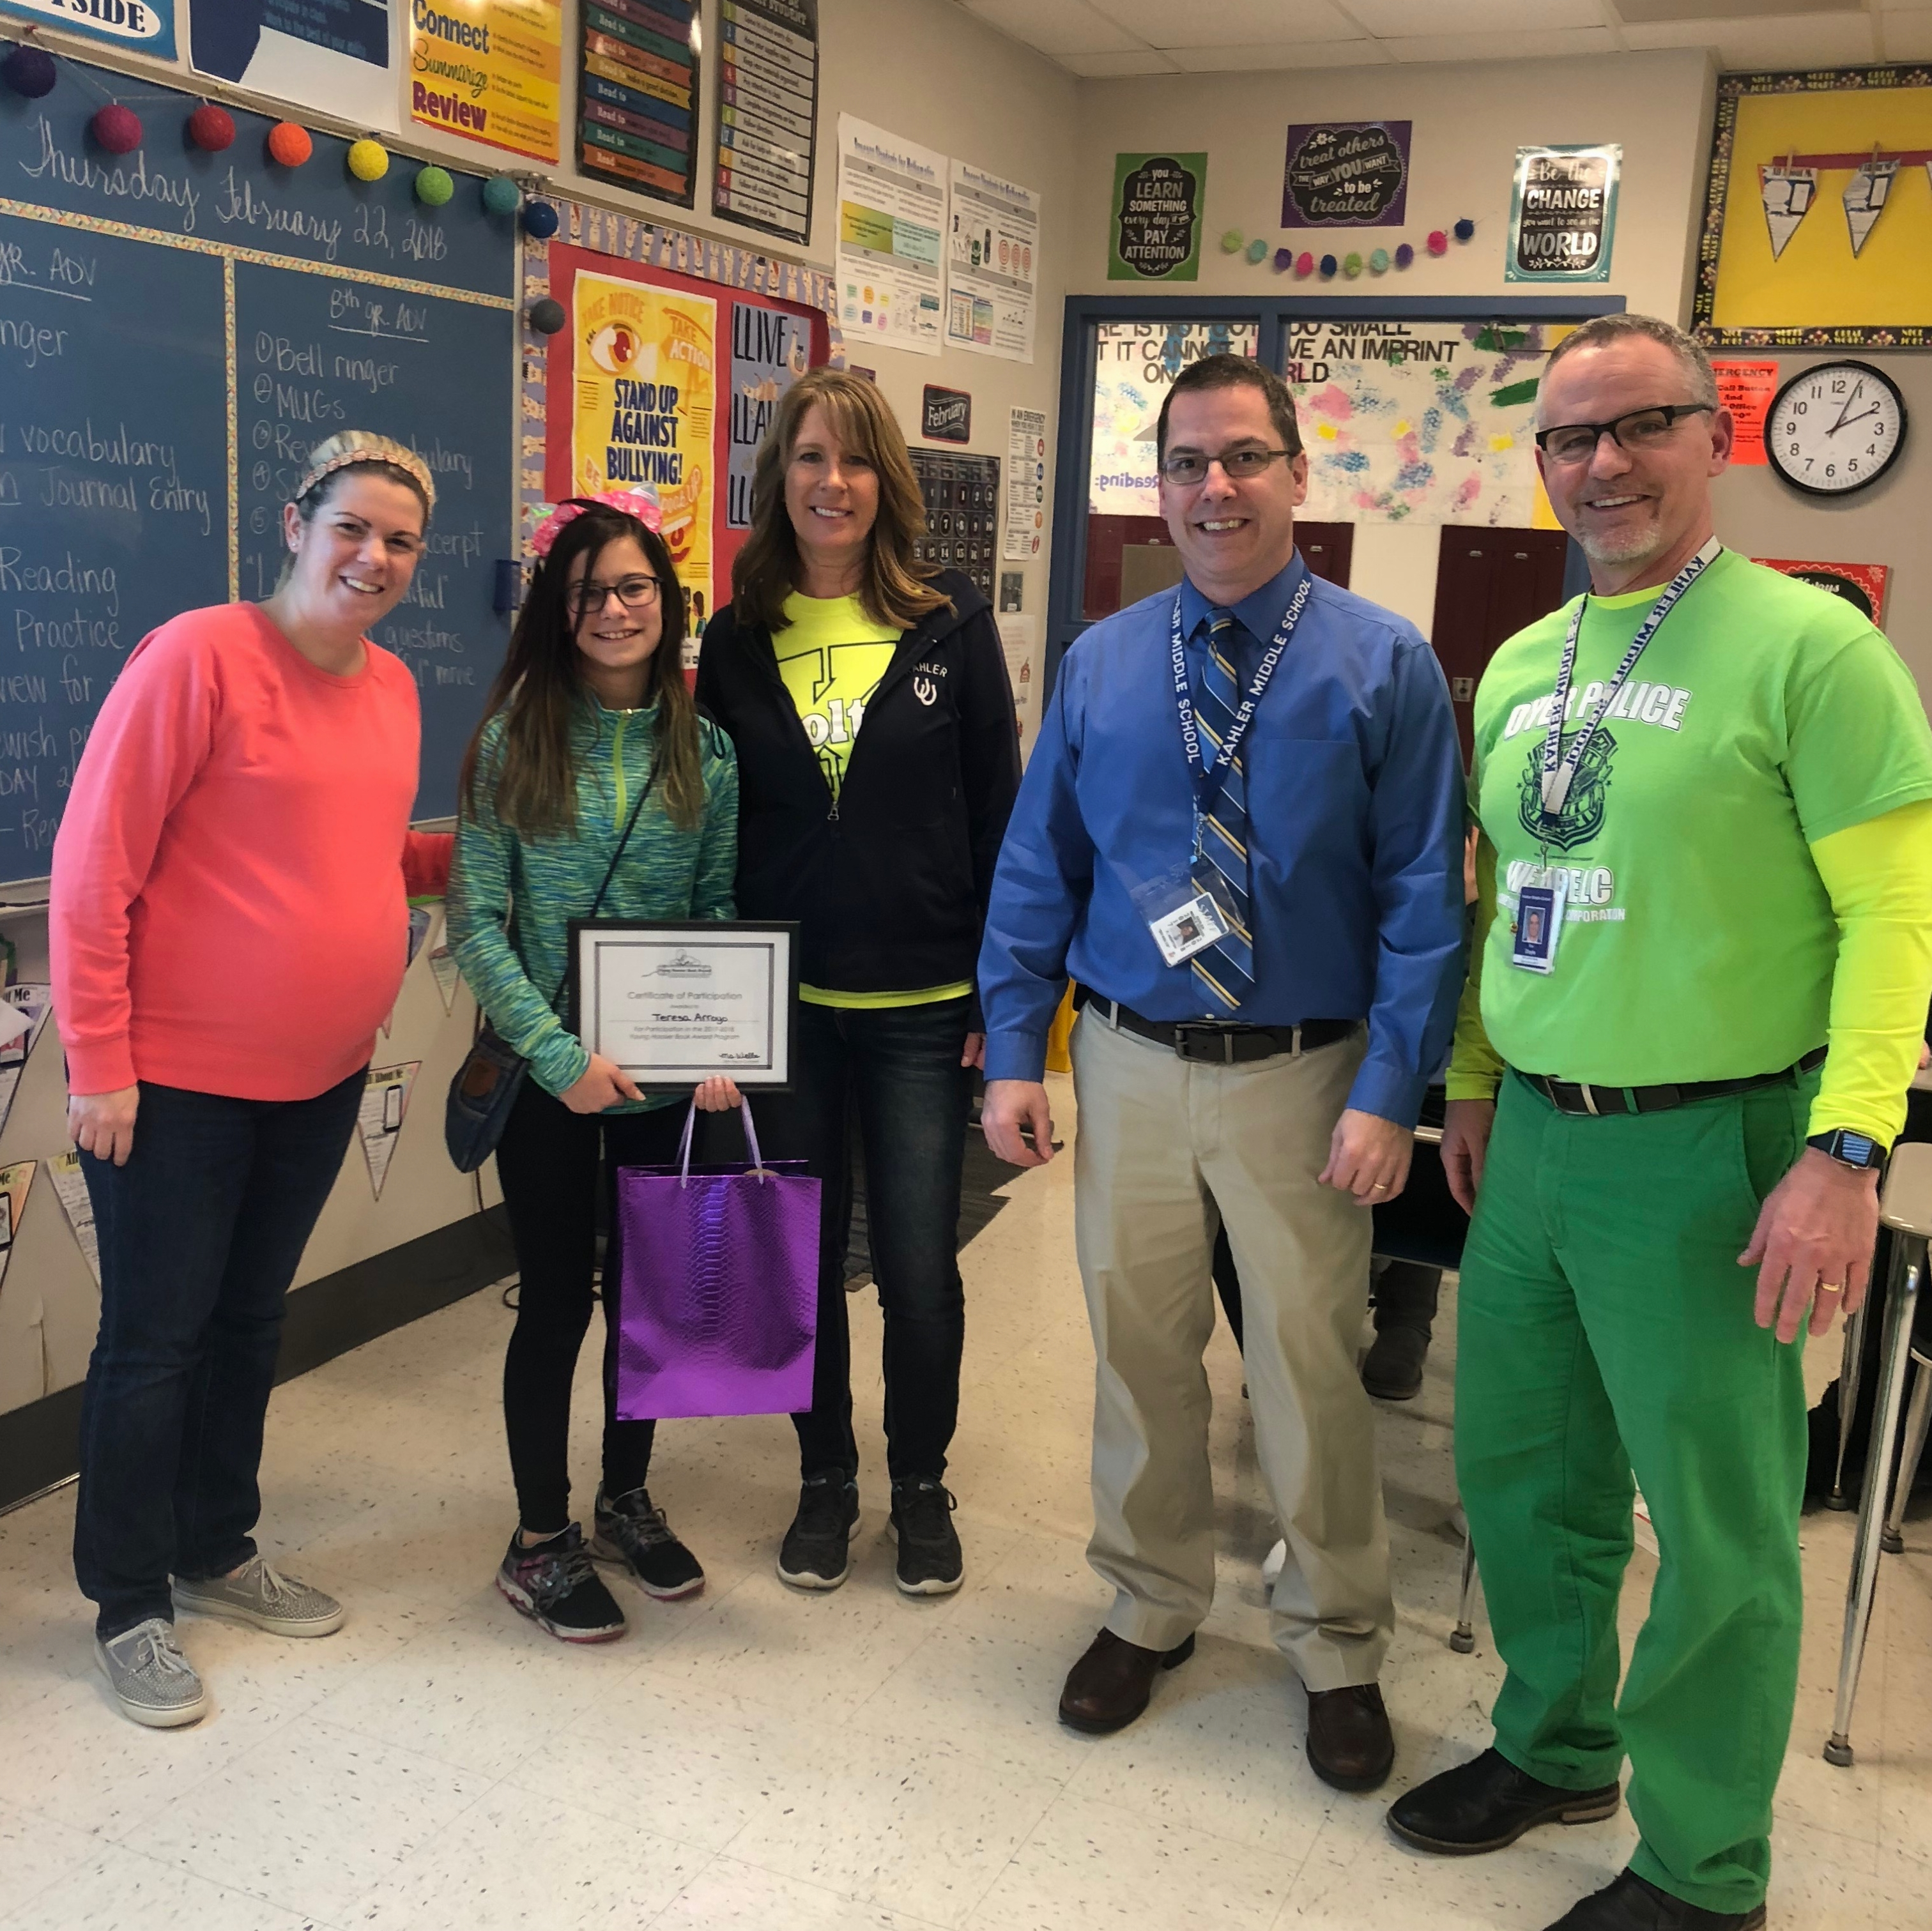 Teresa Arroyo is the first student to read all 20 Young Hoosier books! That's quite an accomplishment! She received a certificate of participation and a gift bag filled with fun prizes!